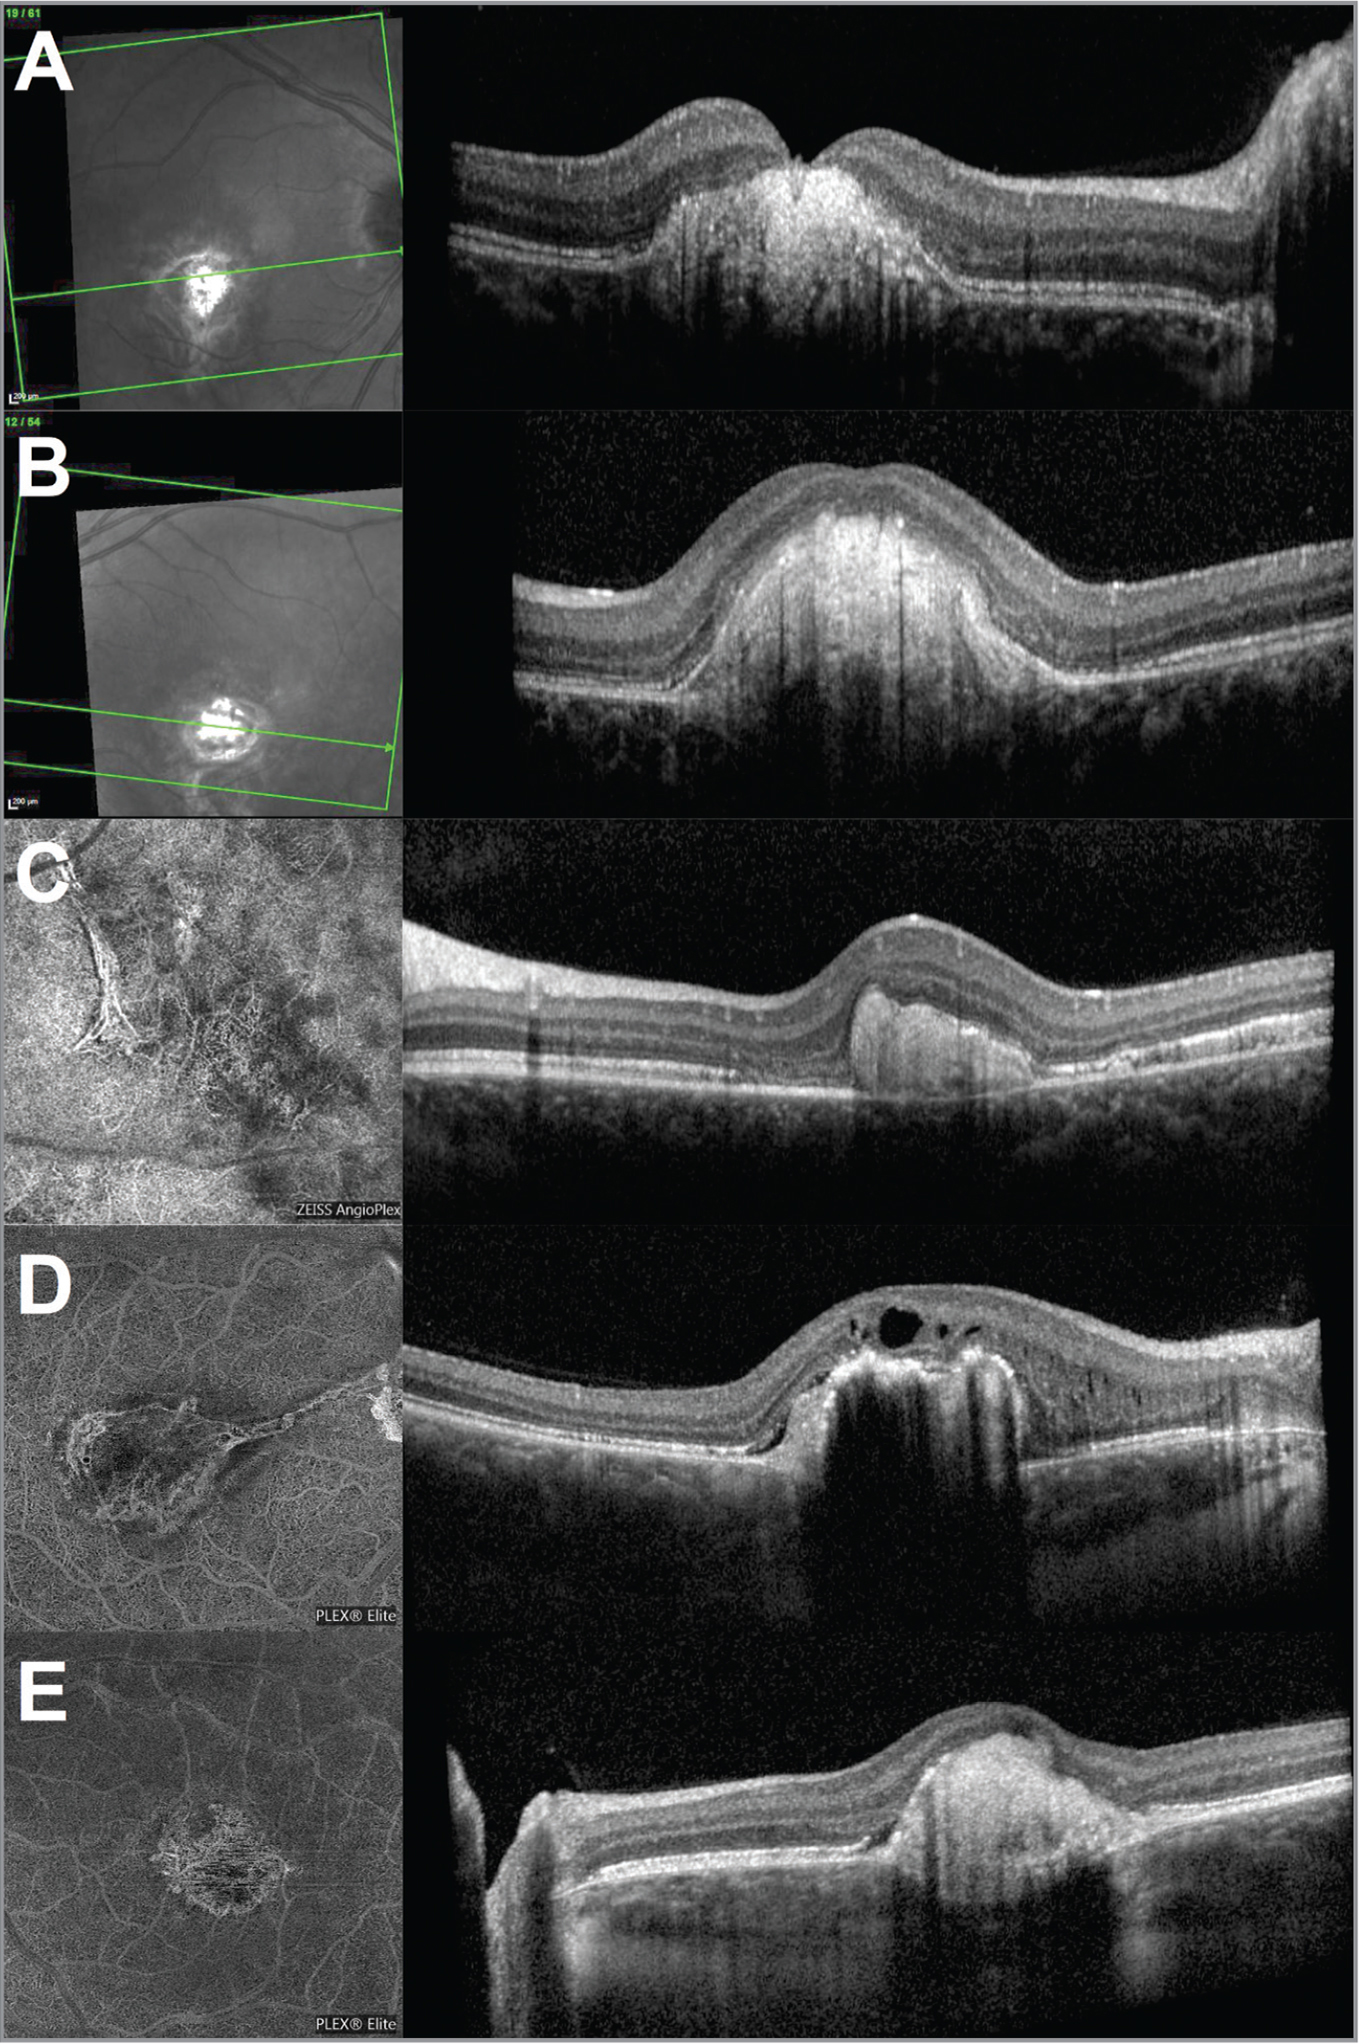 B-scan optical coherence tomography (OCT) and corresponding infrared imaging or OCT angiography (OCTA) at the end of follow-up. (A) Case 1 right eye. (B) Case 1 left eye. (C) Case 2 left eye. (D) Case 3 right eye. (E) Case 3 left eye. Serous retinal detachment and intraretinal cysts were totally absent in Case 1 (right and left eyes) and Case 2 (left eye). In Case 3, there was a chronical intraretinal cystic change in the right eye associated with a chronic, abrupt, tent-shaped subretinal detachment in both eyes that did not respond to anti-vascular endothelial growth factor injection. OCTA, when realized in patient, showed a decrease (C) or a stabilization of the neovascular membrane (D, E). However, OCTA was not performed during the follow-up in Case 1 (A, B).